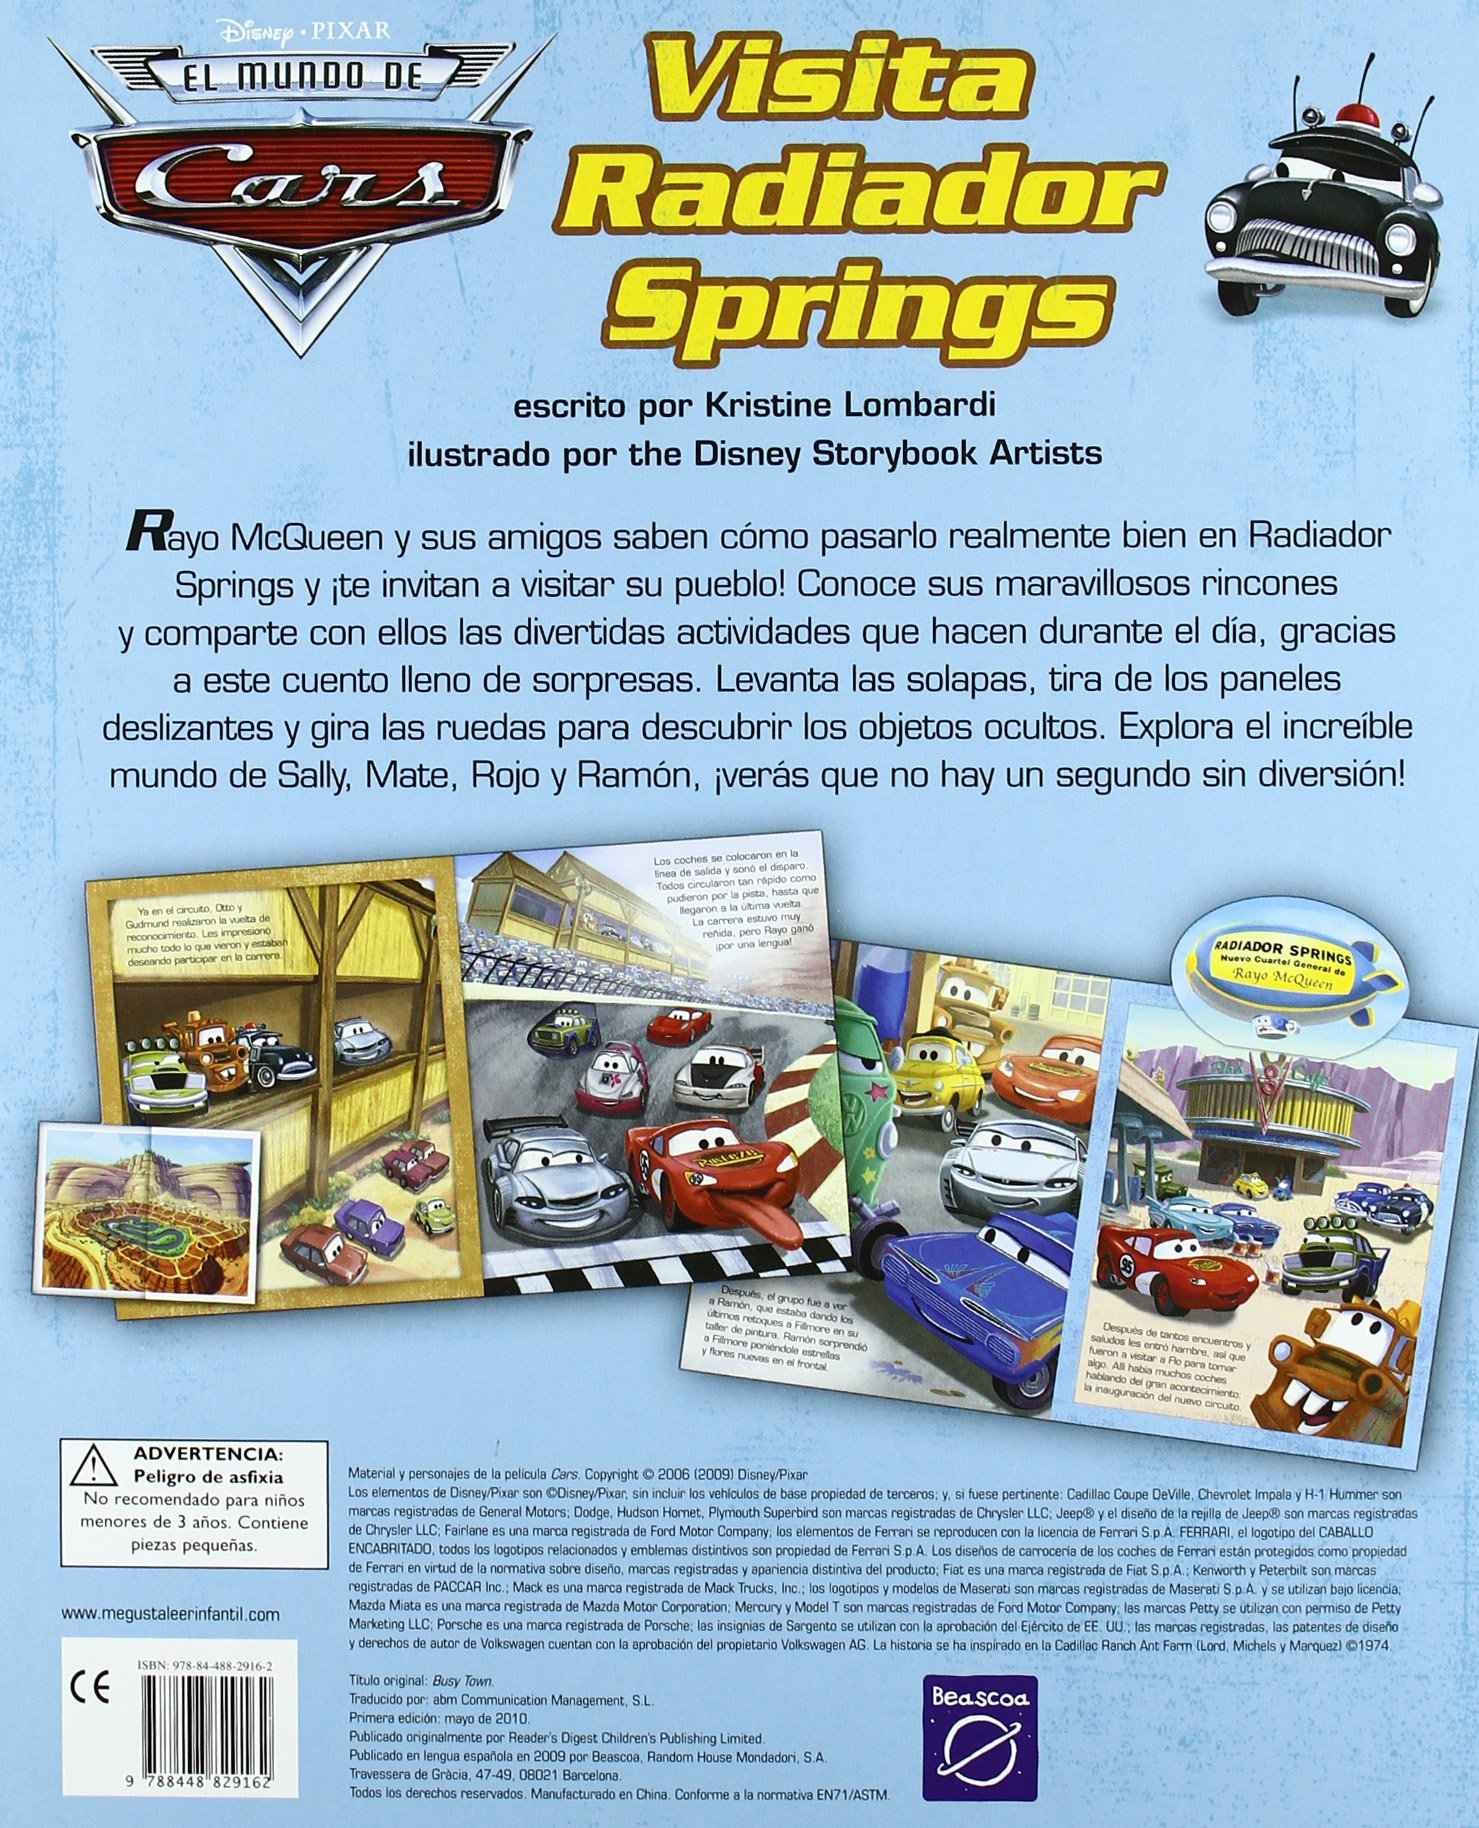 Visita radiador springs. Cars: Varios Autores: 9788448829162: Amazon.com: Books